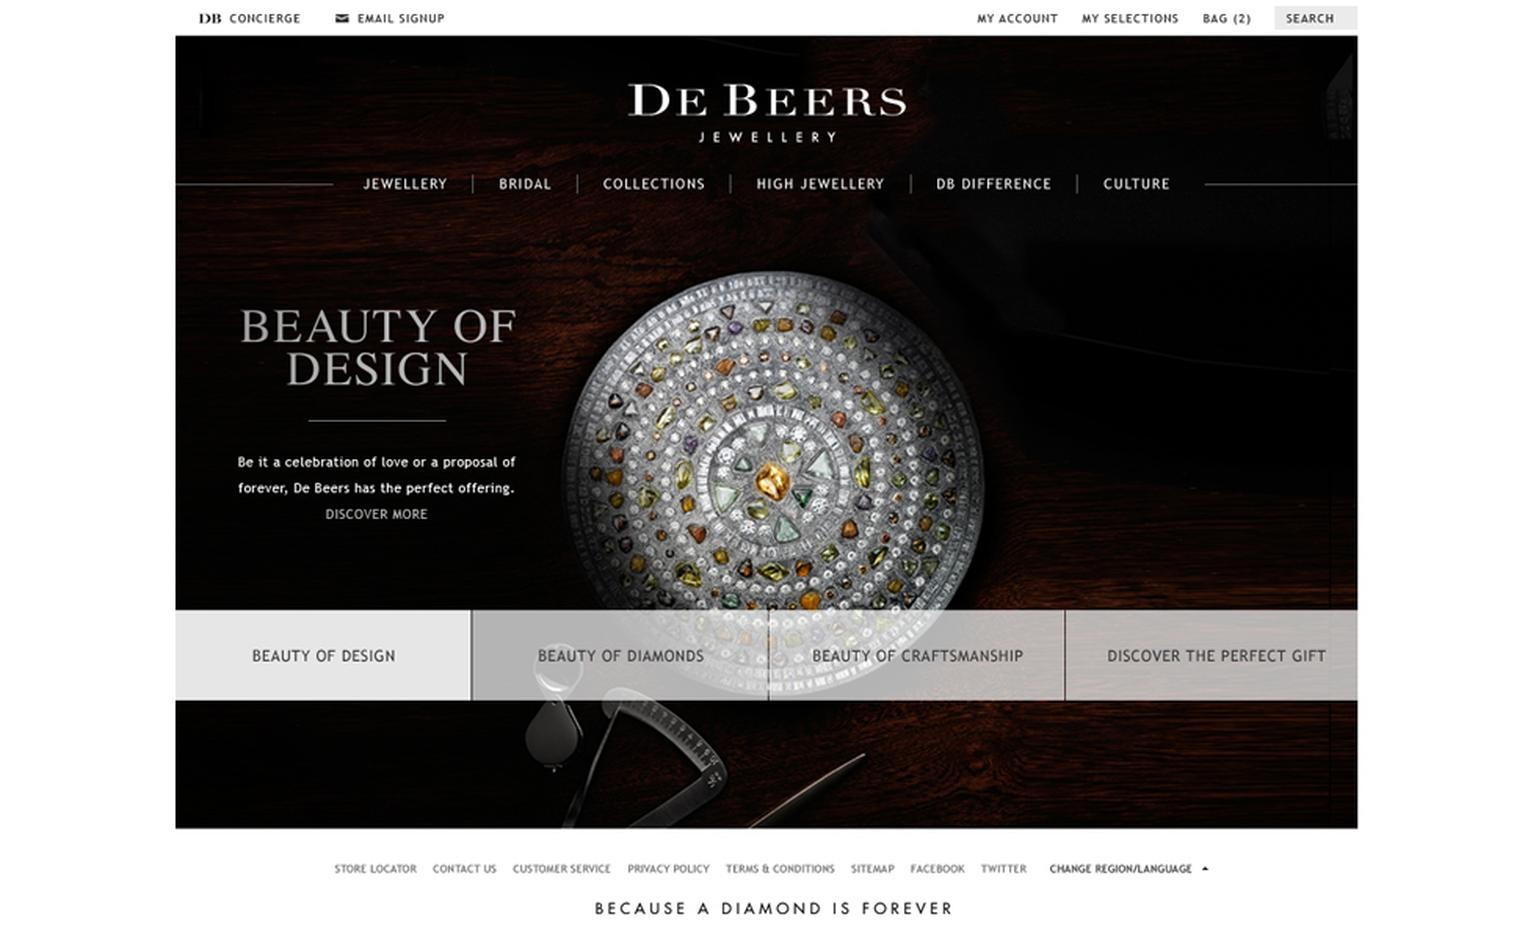 Image from De Beers new website featuring Talisman collection